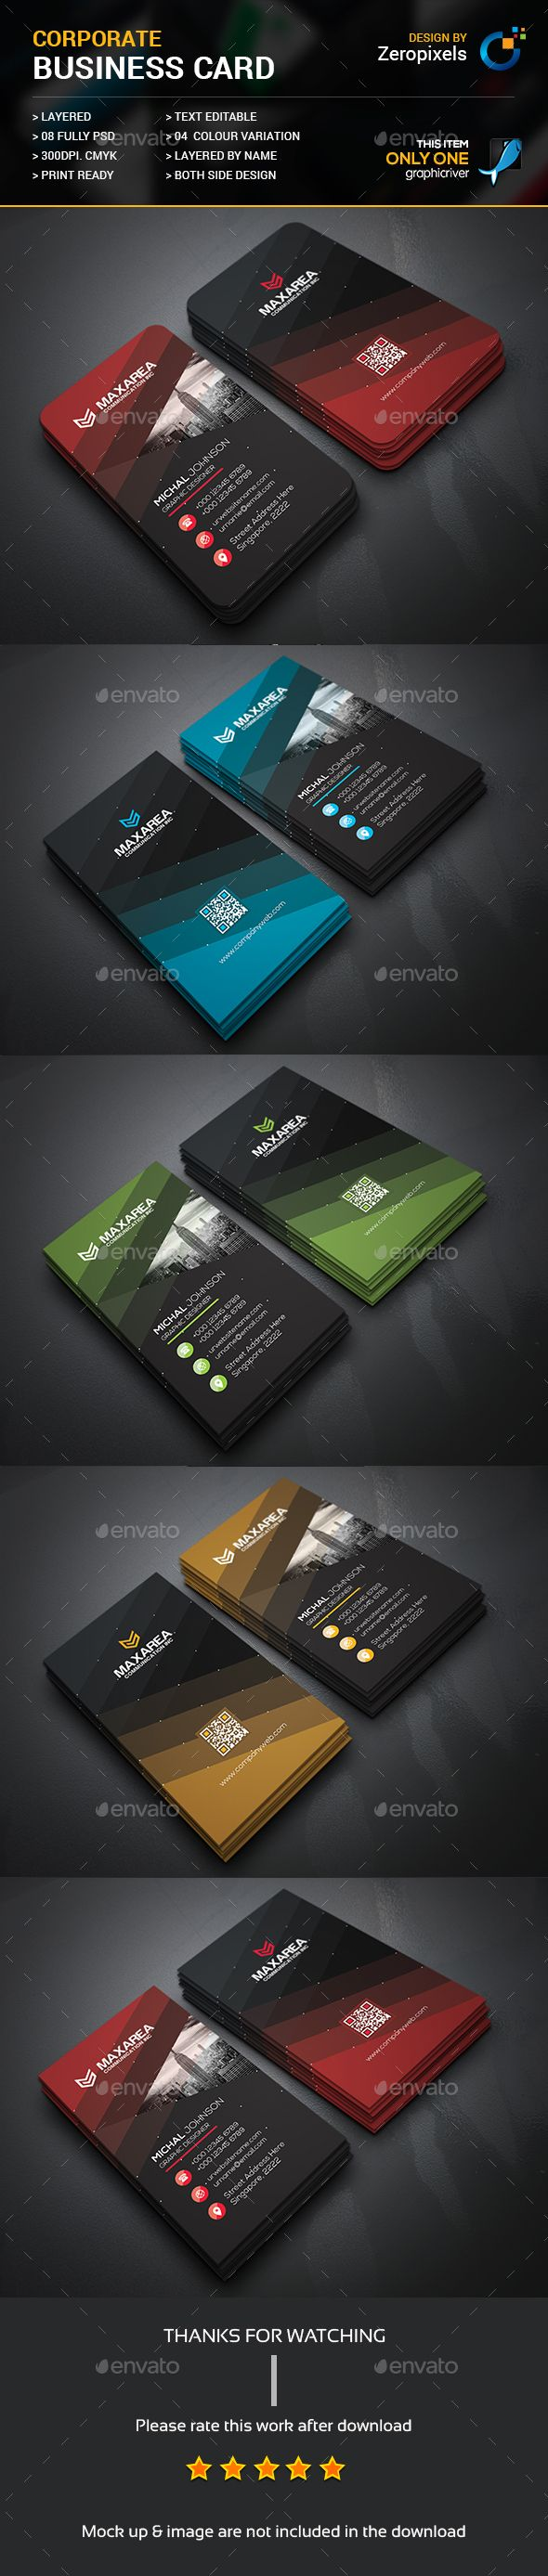 212 best business cards images on Pinterest | Visit cards, Business ...